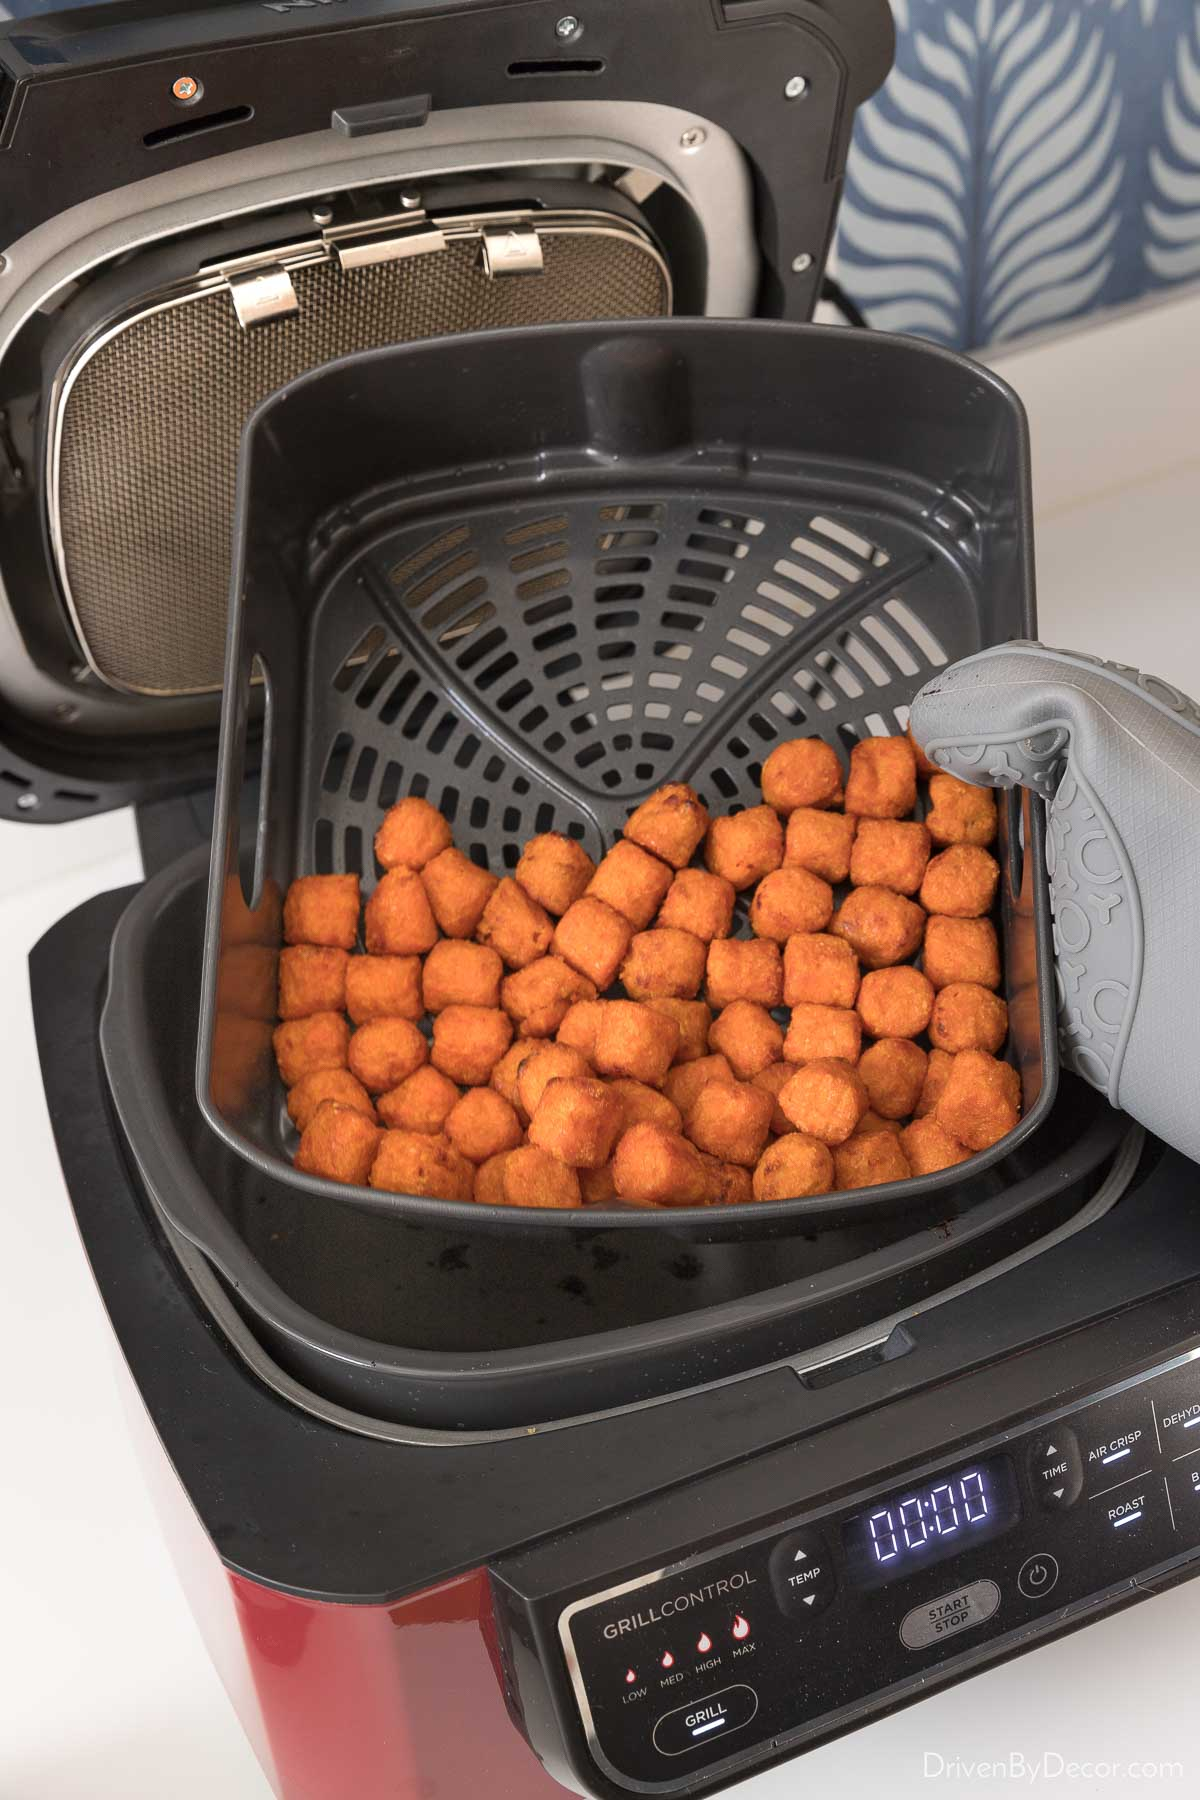 This air fryer is one of the best small kitchen appliances I own!